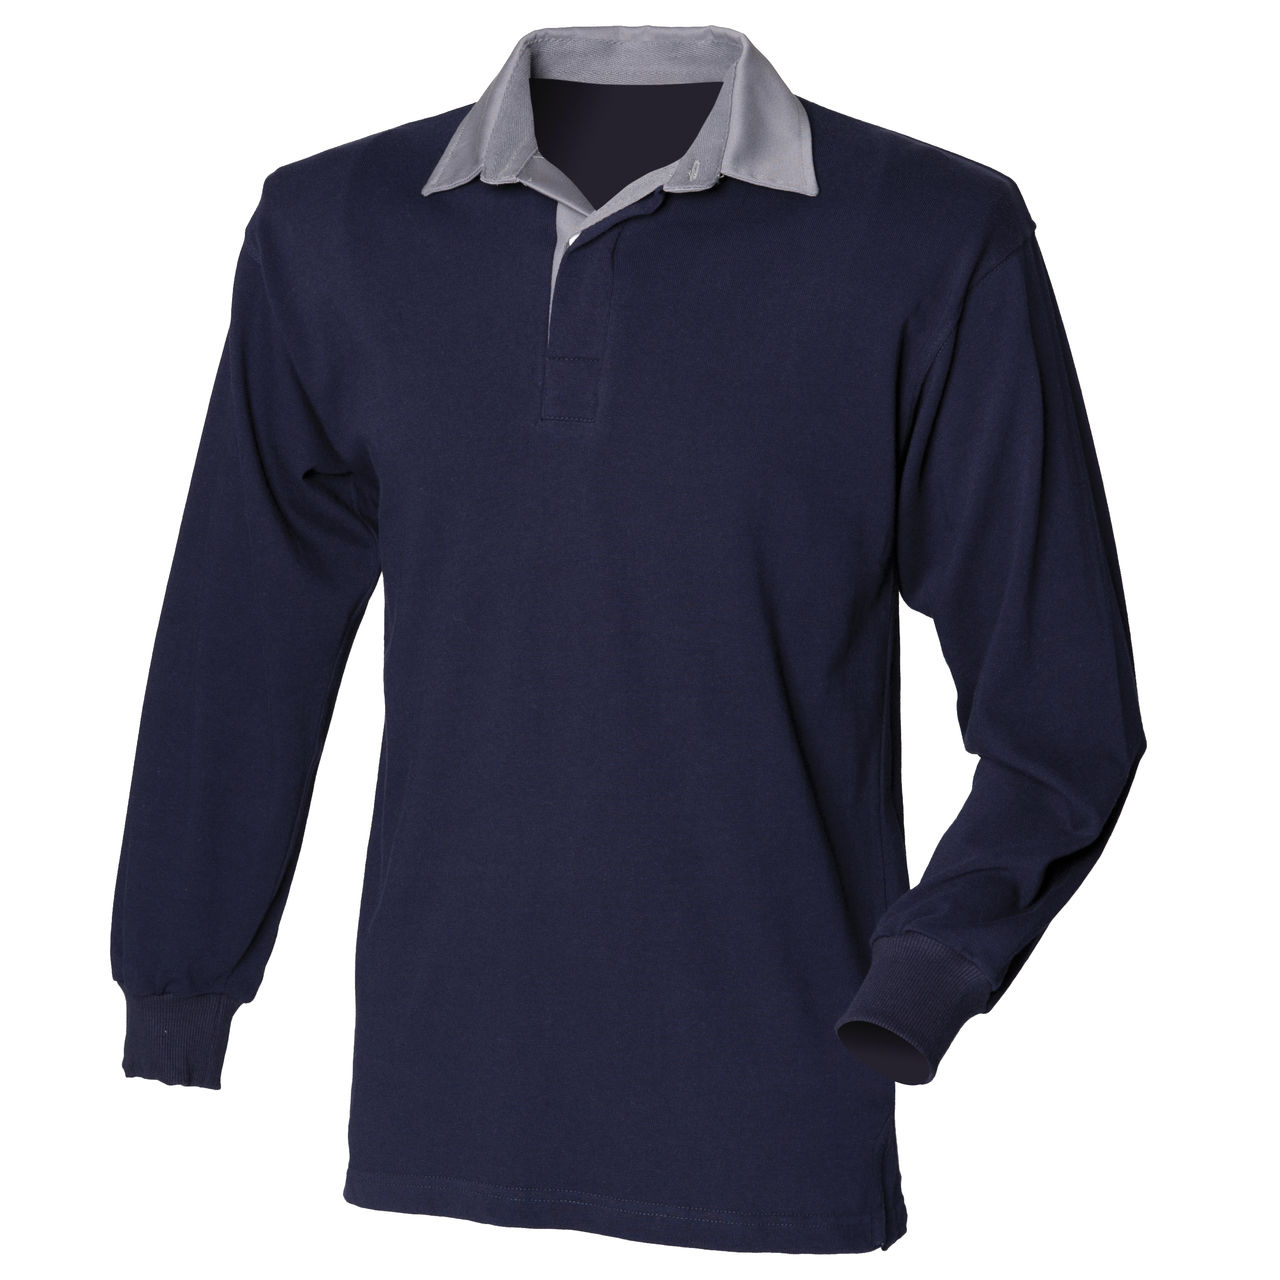 Shop eBay for great deals on Polo, Rugby Regular 2XL Casual Shirts for Men. You'll find new or used products in Polo, Rugby Regular 2XL Casual Shirts for Men on eBay. Free shipping on selected items.